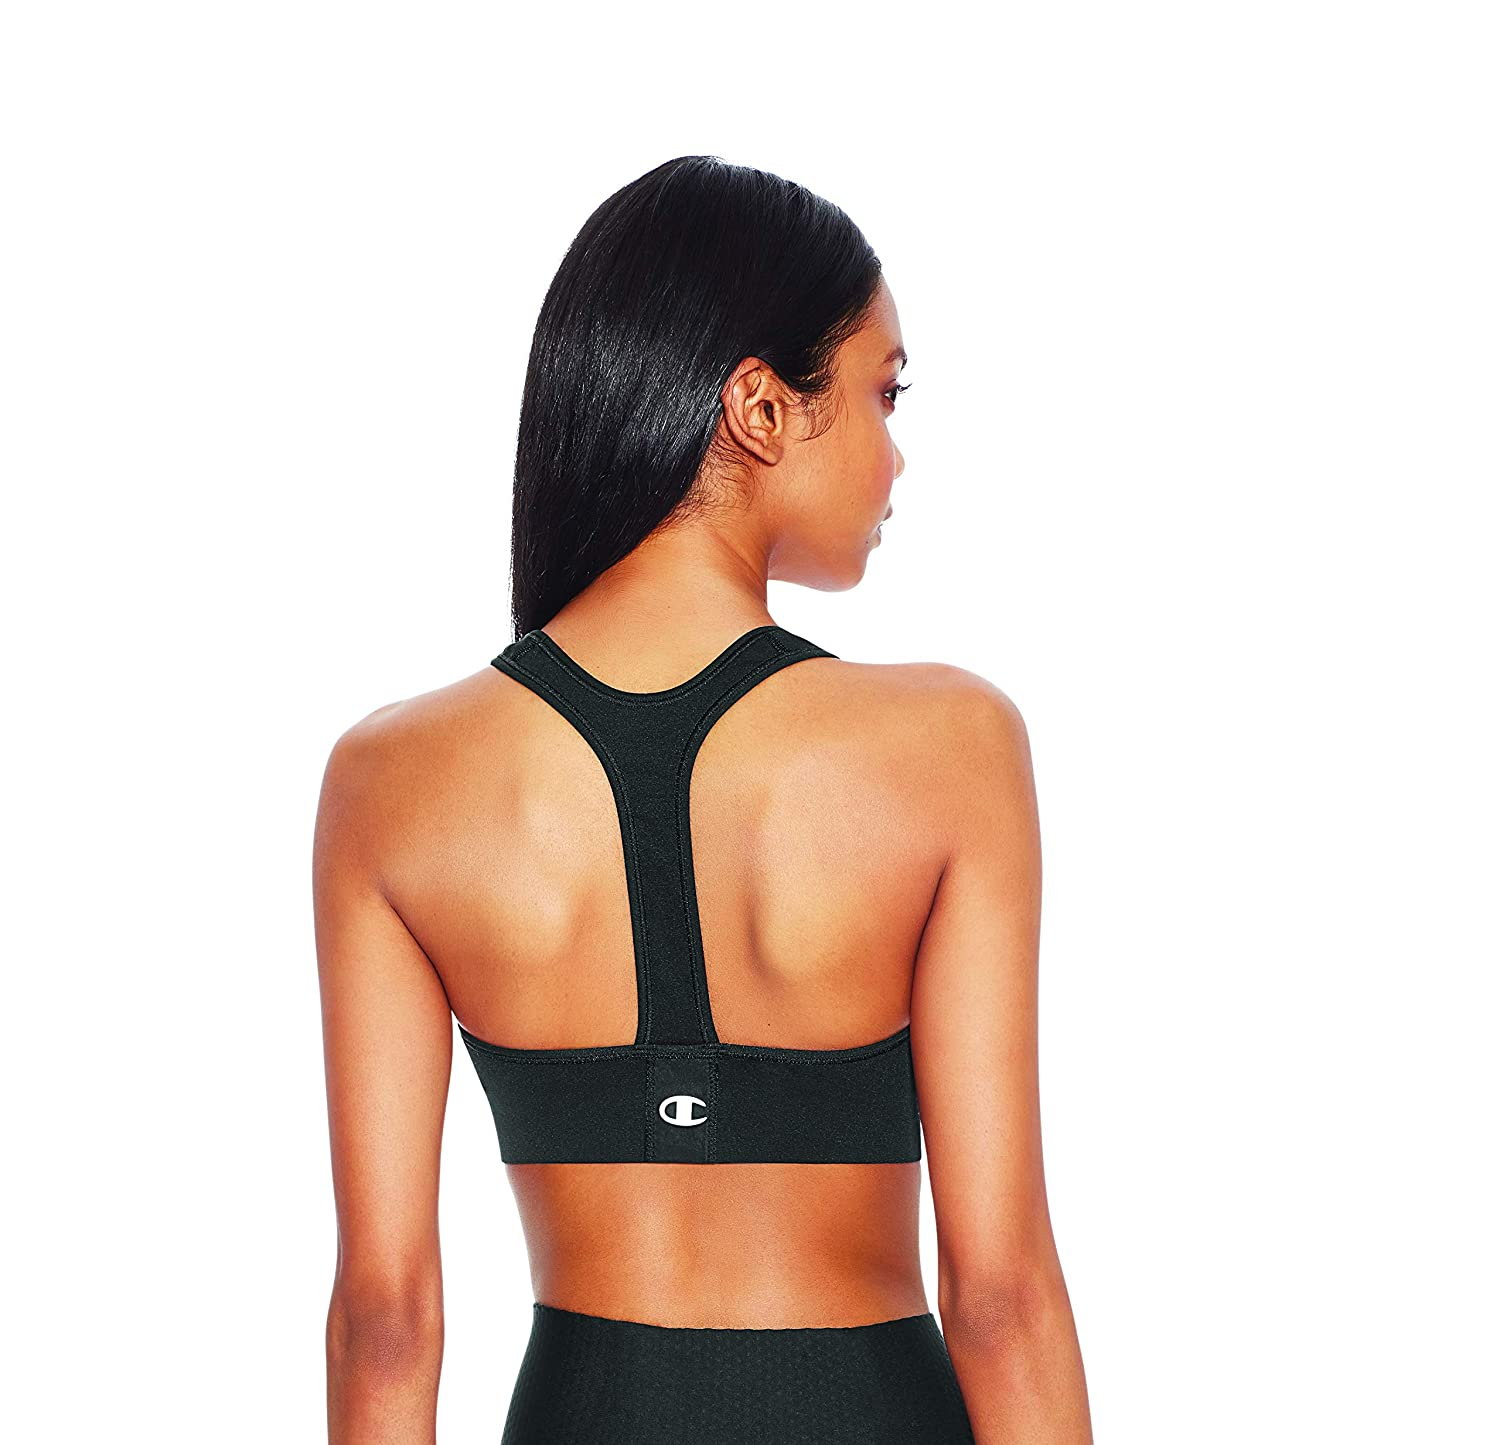 d3026216bf71 Champion Absolute Sports Bra With SmoothTec Band at Amazon Women s Clothing  store